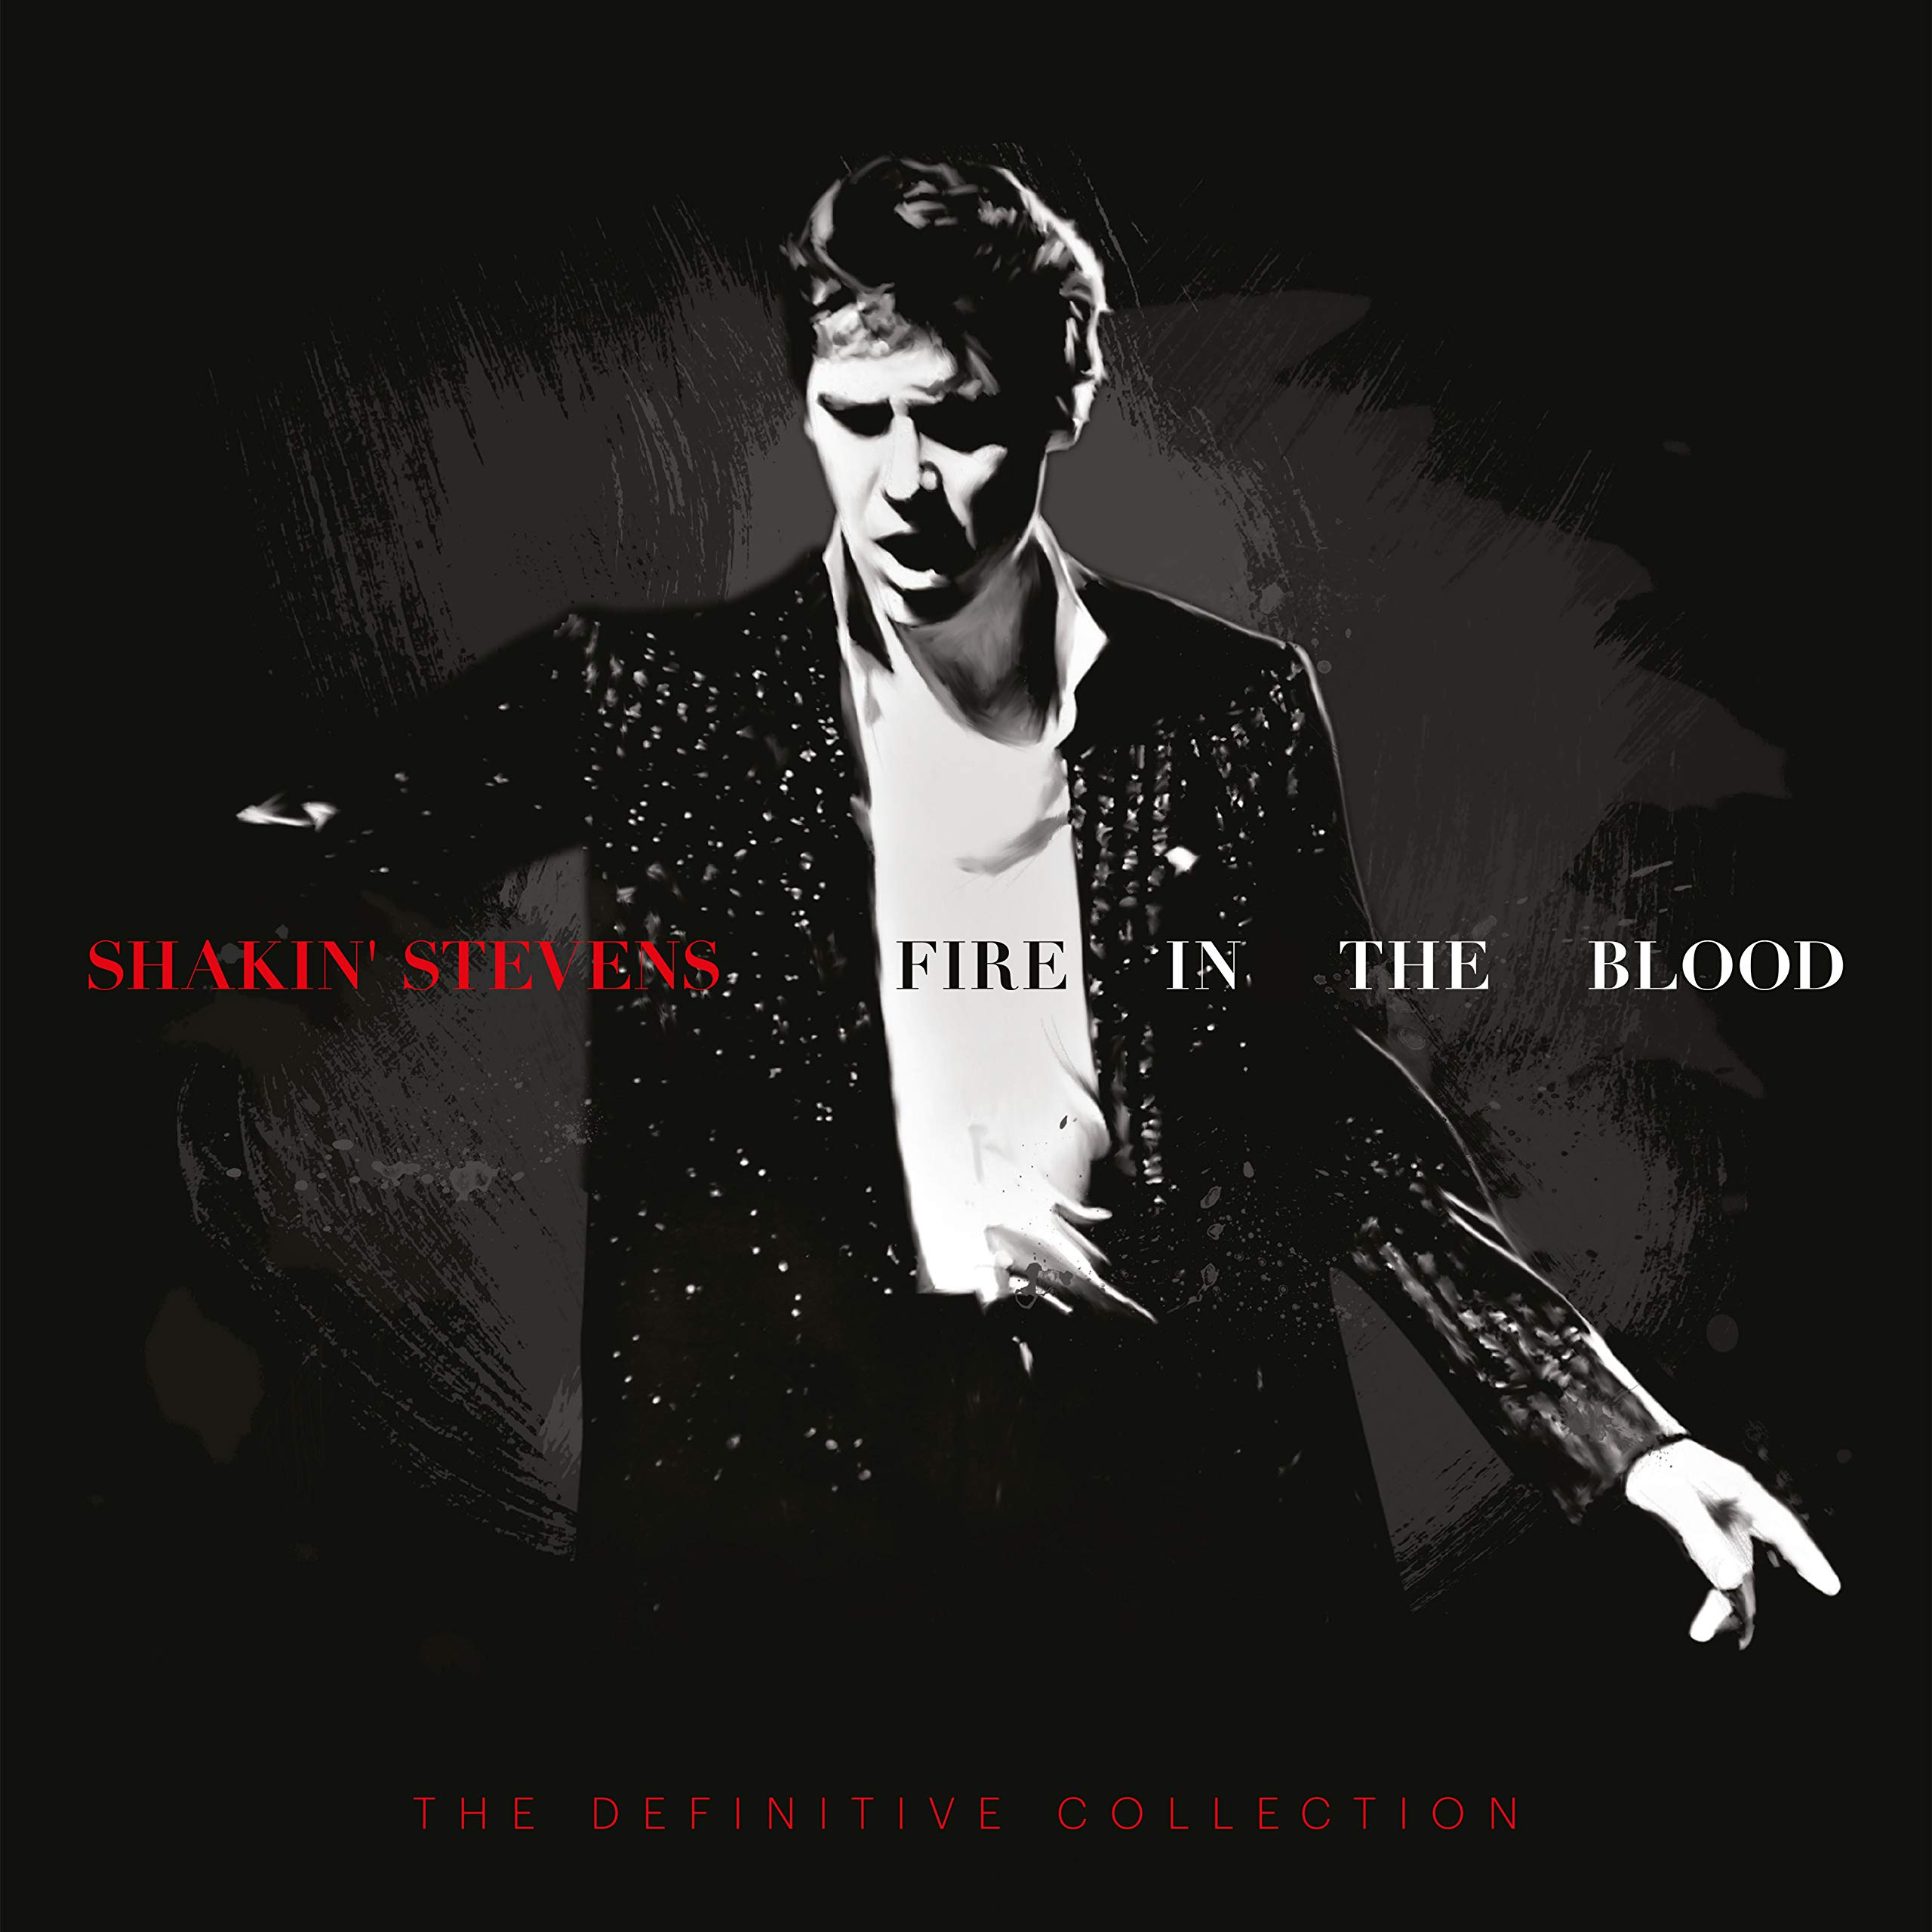 Shakin' Stevens - Fire In The Blood  The Definitive Collection (2020) [FLAC] Download